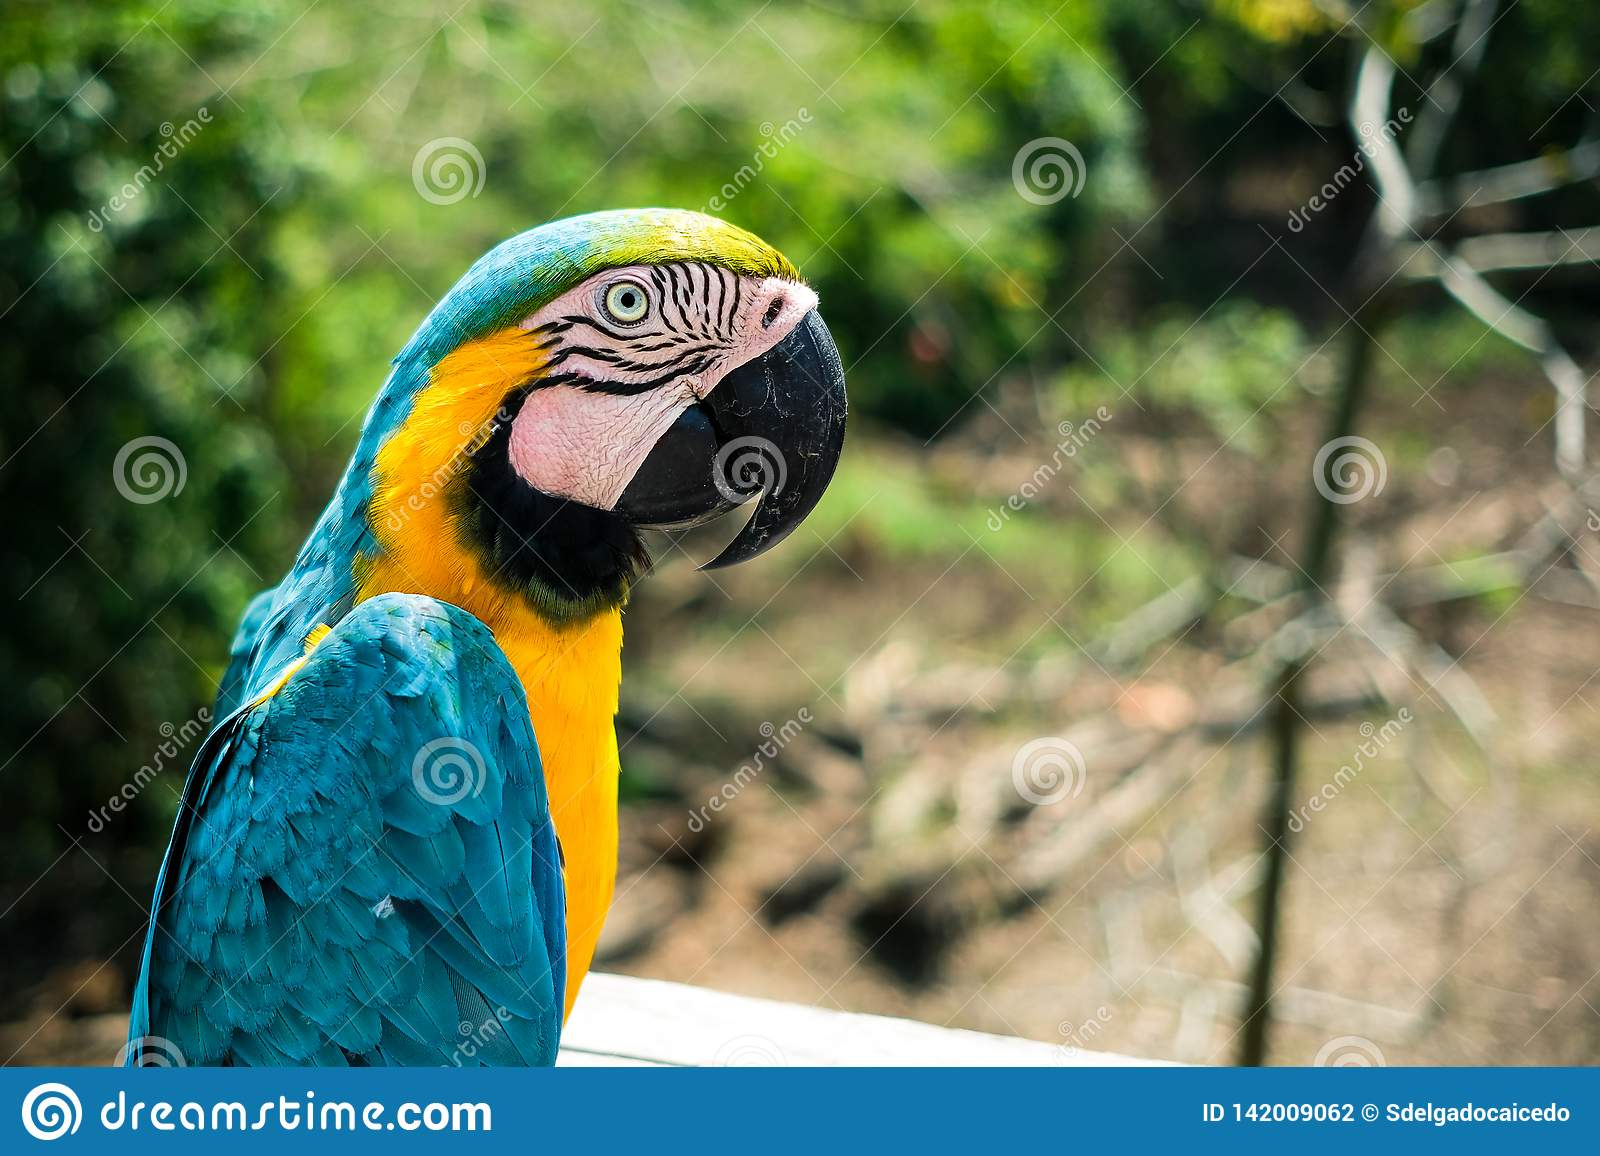 A blue macaw poses for the camera in the brazilian amazon